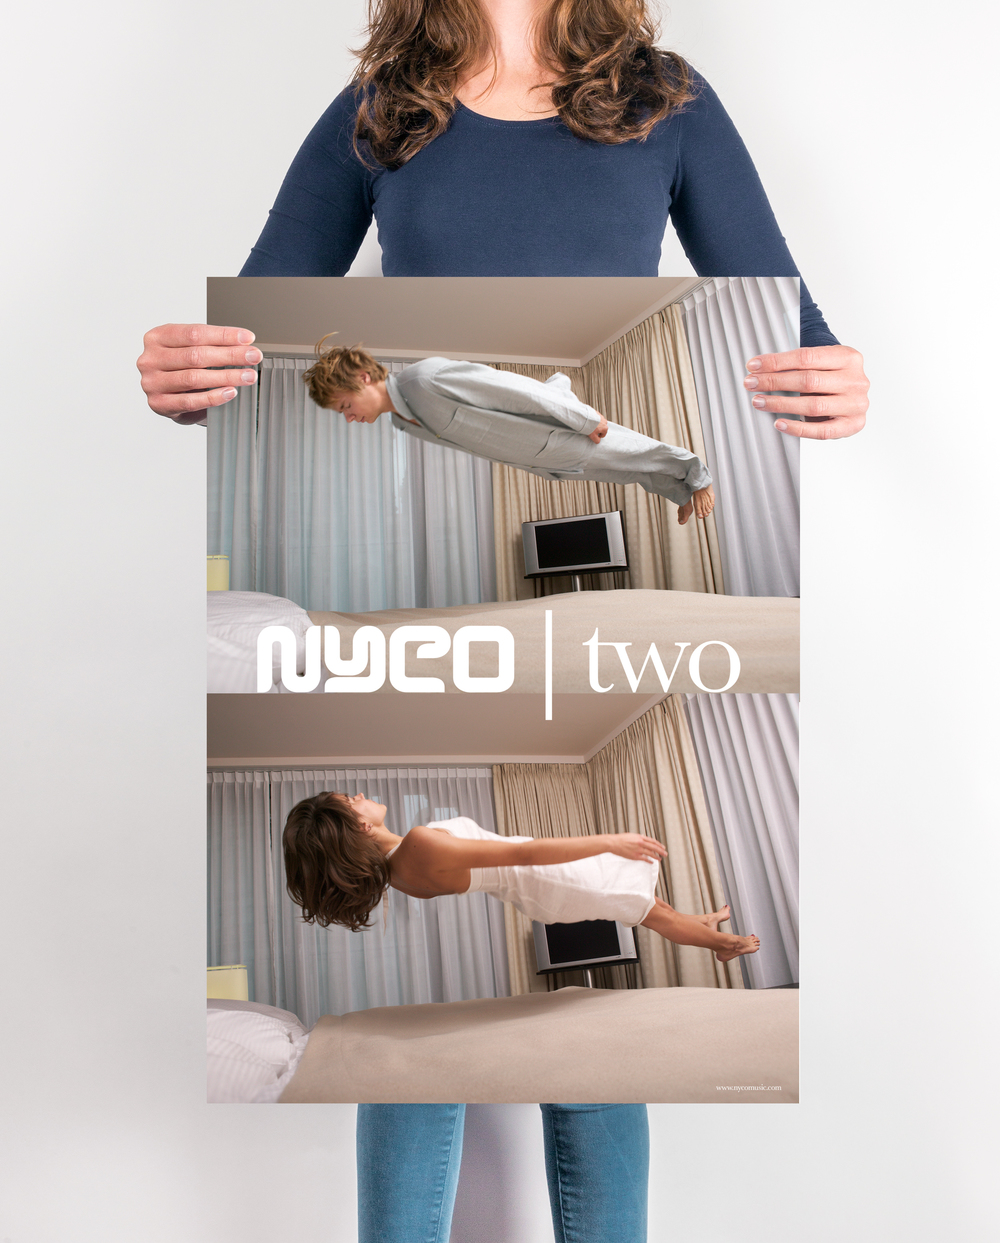 3D_nyco-two_poster_2500w.jpg